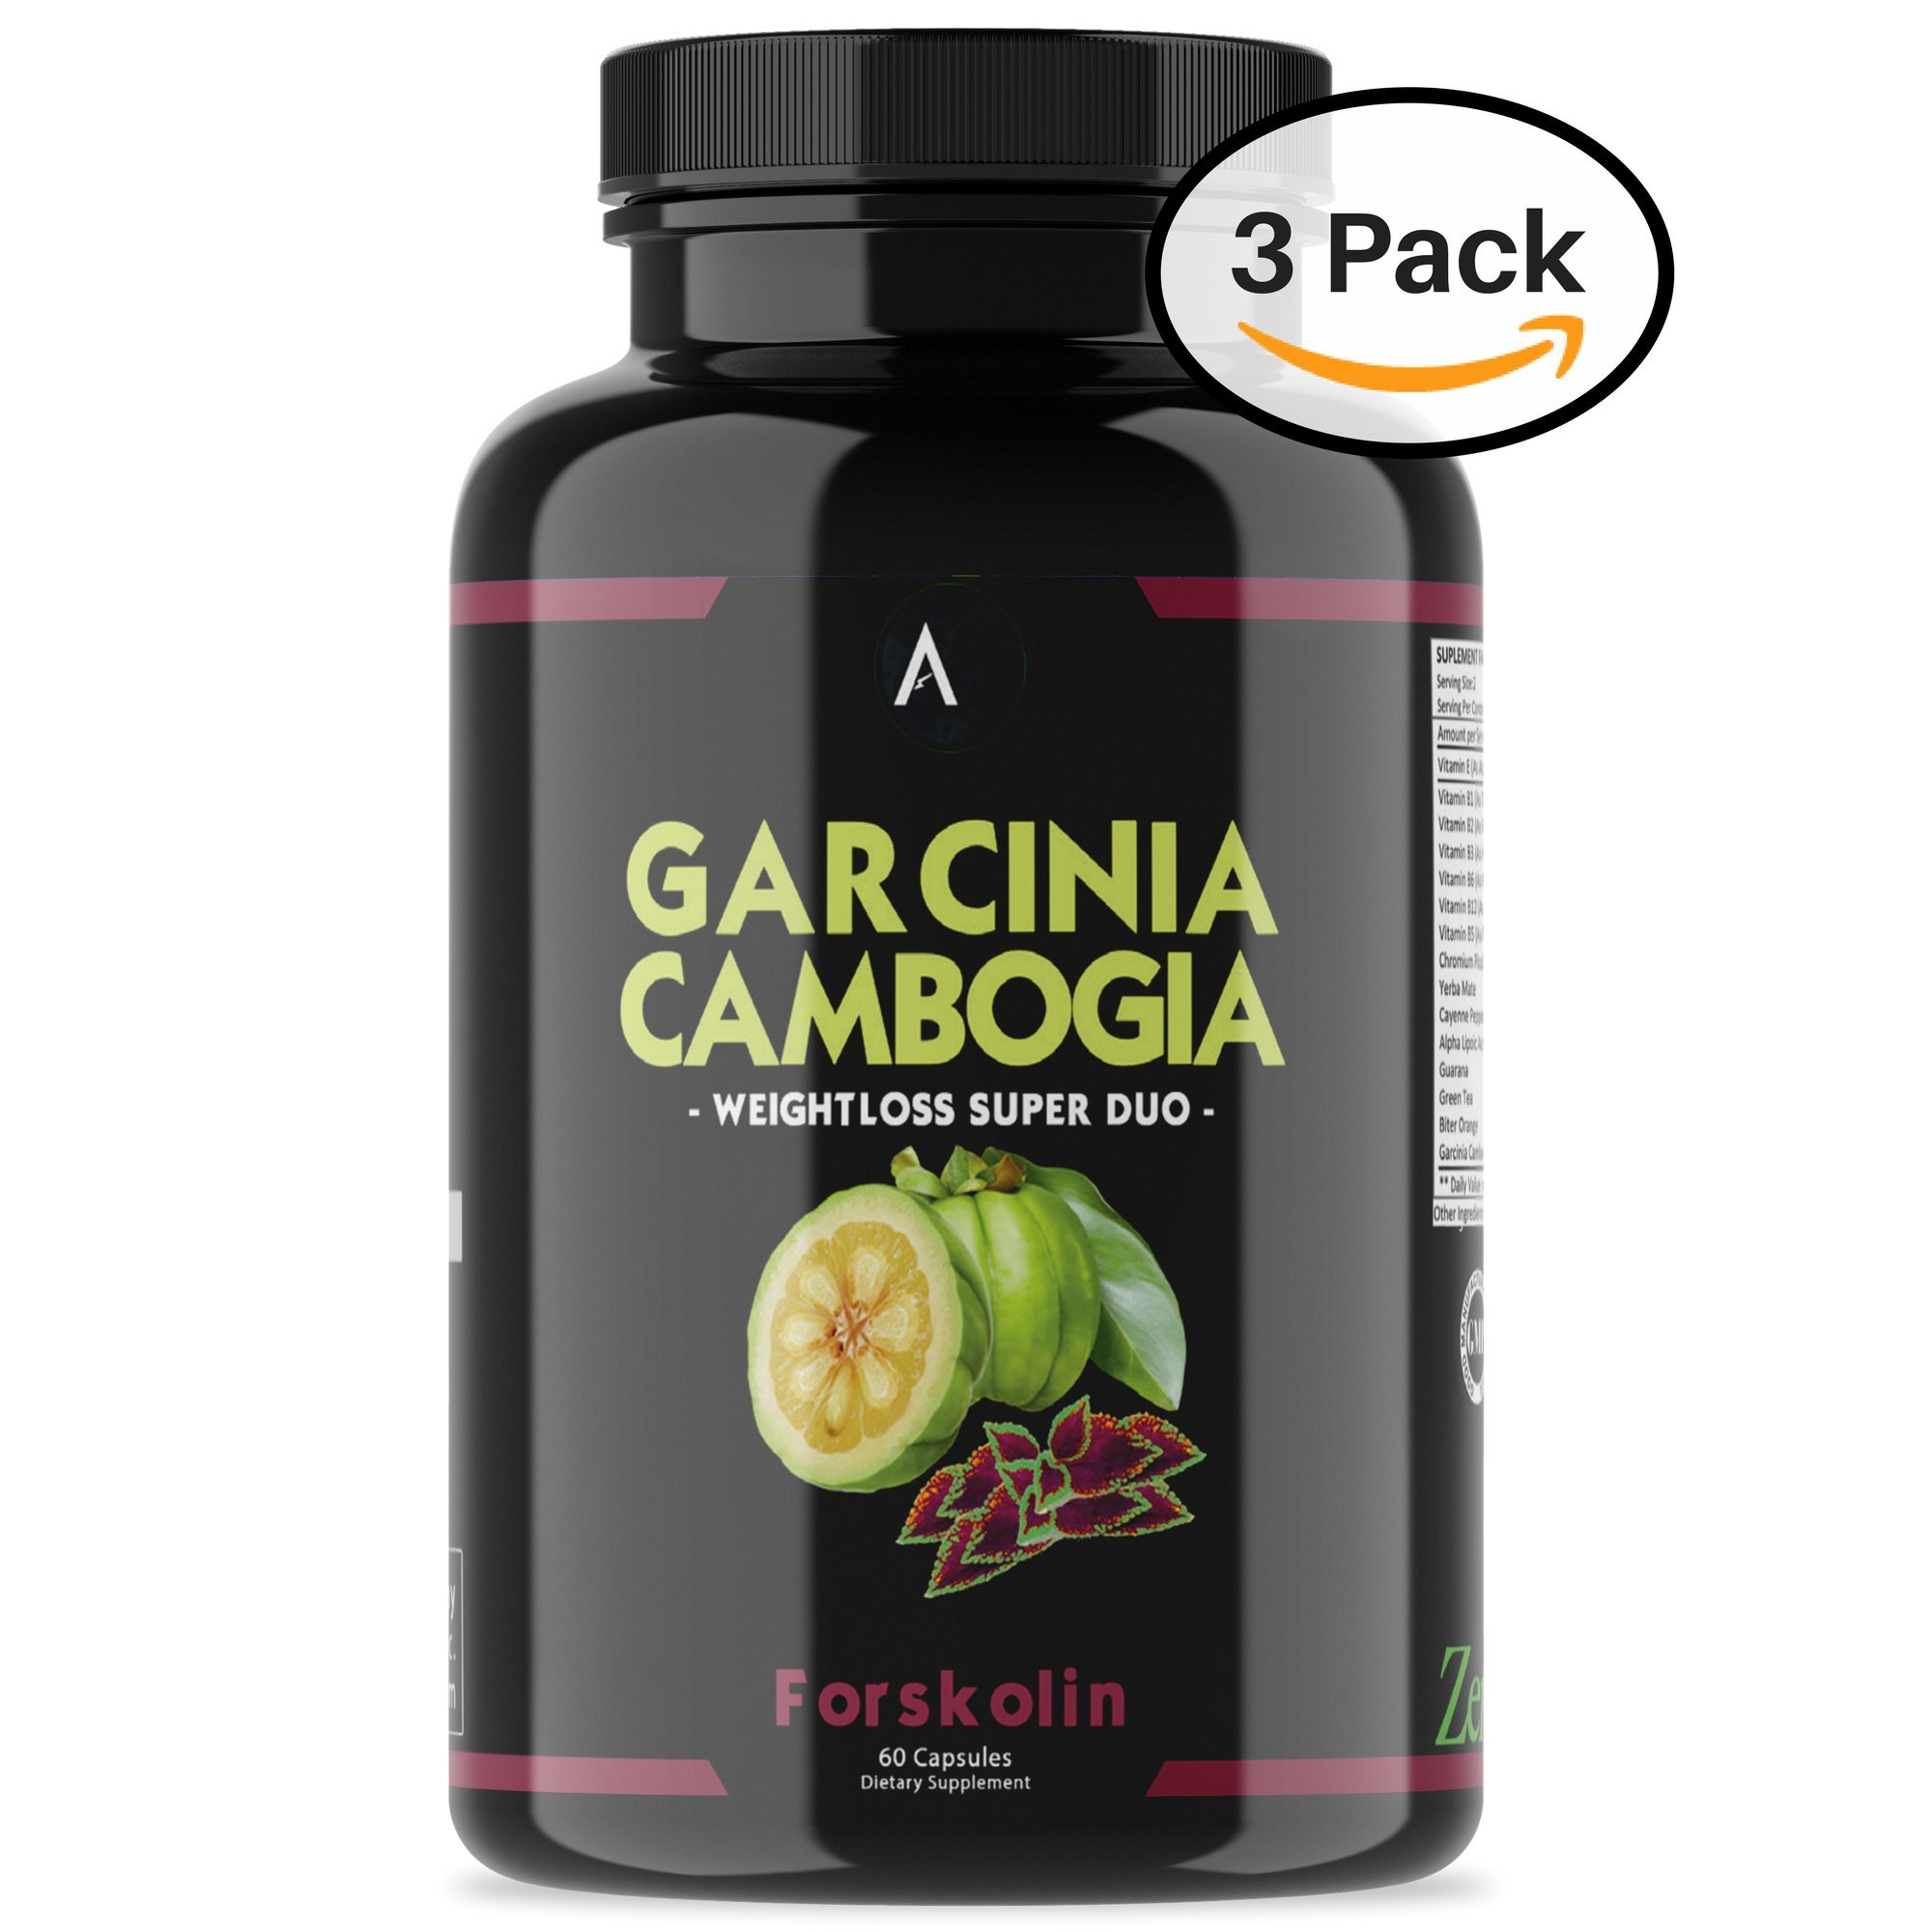 Angry Supplements Garcinia Cambogia with Forskolin Pill, Super Weightloss Booster, Premium All-Natural Detox for Fat Burning - Pure Extract in Capsule Form for Complete Diet, Active Health (3-Pack)